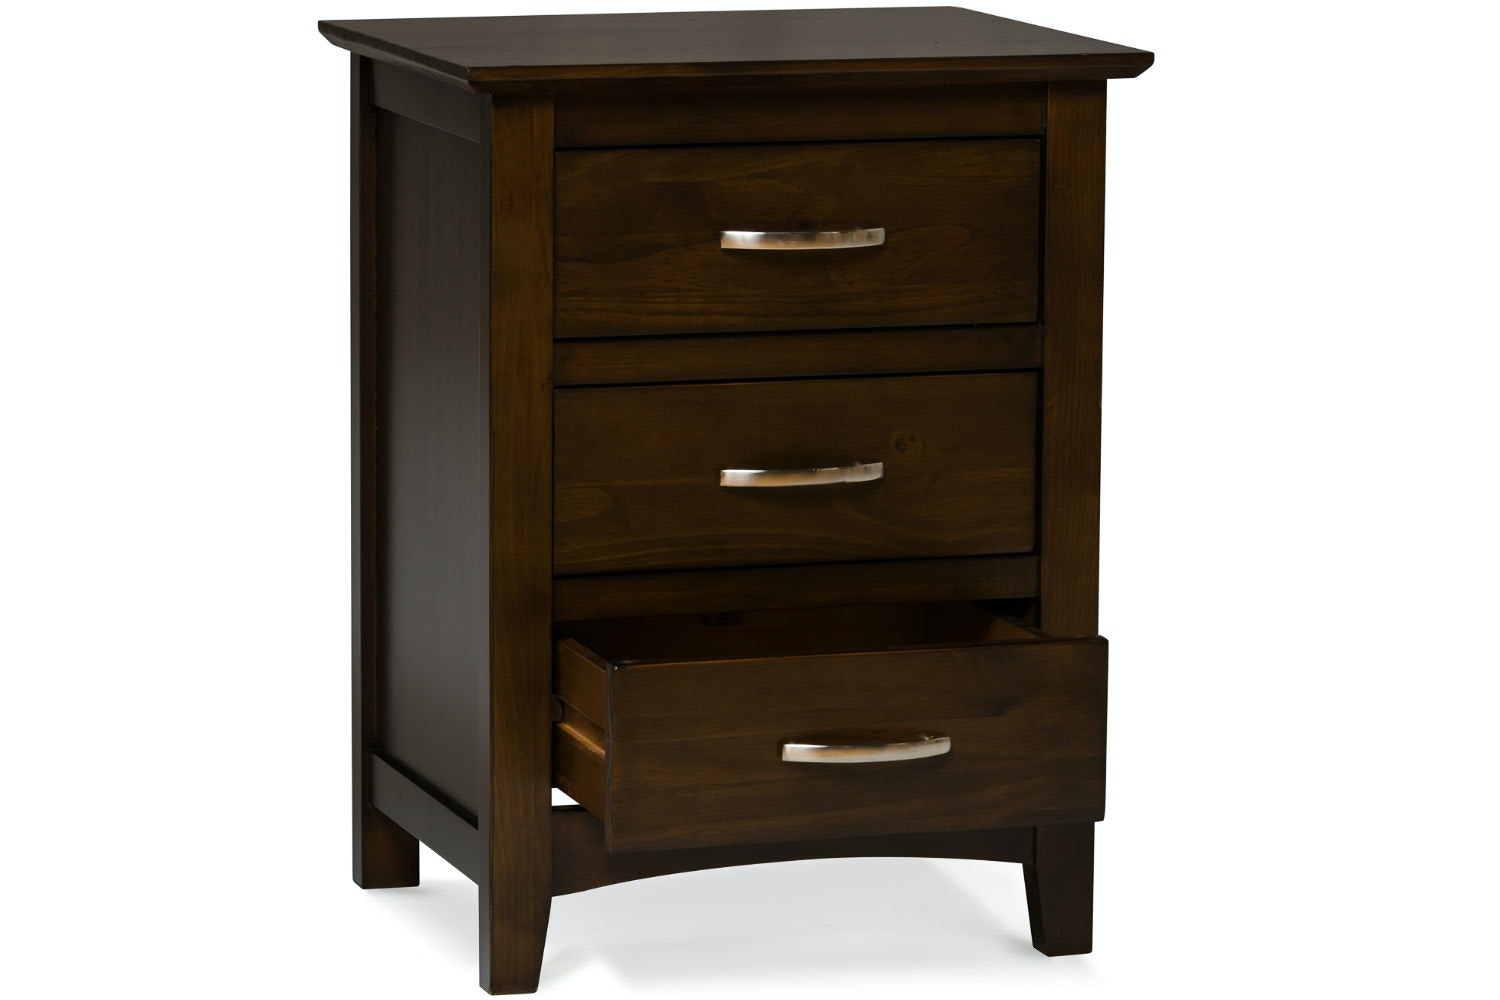 Wentworth 3 Drawer Bedside Locker